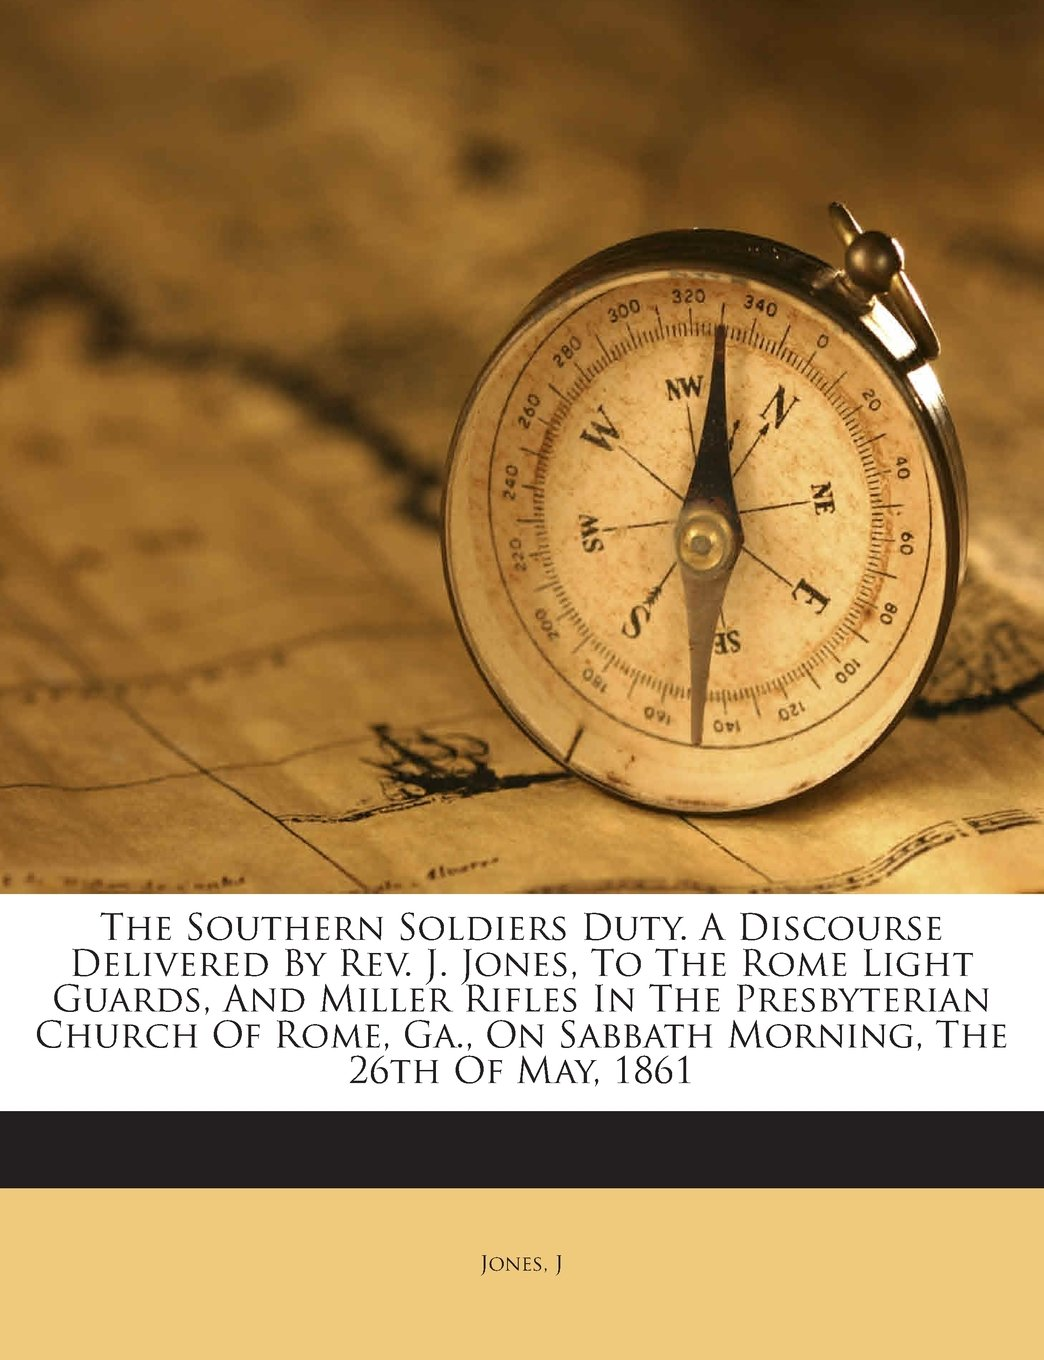 Download The Southern Soldiers Duty. A Discourse Delivered By Rev. J. Jones, To The Rome Light Guards, And Miller Rifles In The Presbyterian Church Of Rome, Ga., On Sabbath Morning, The 26th Of May, 1861 pdf epub